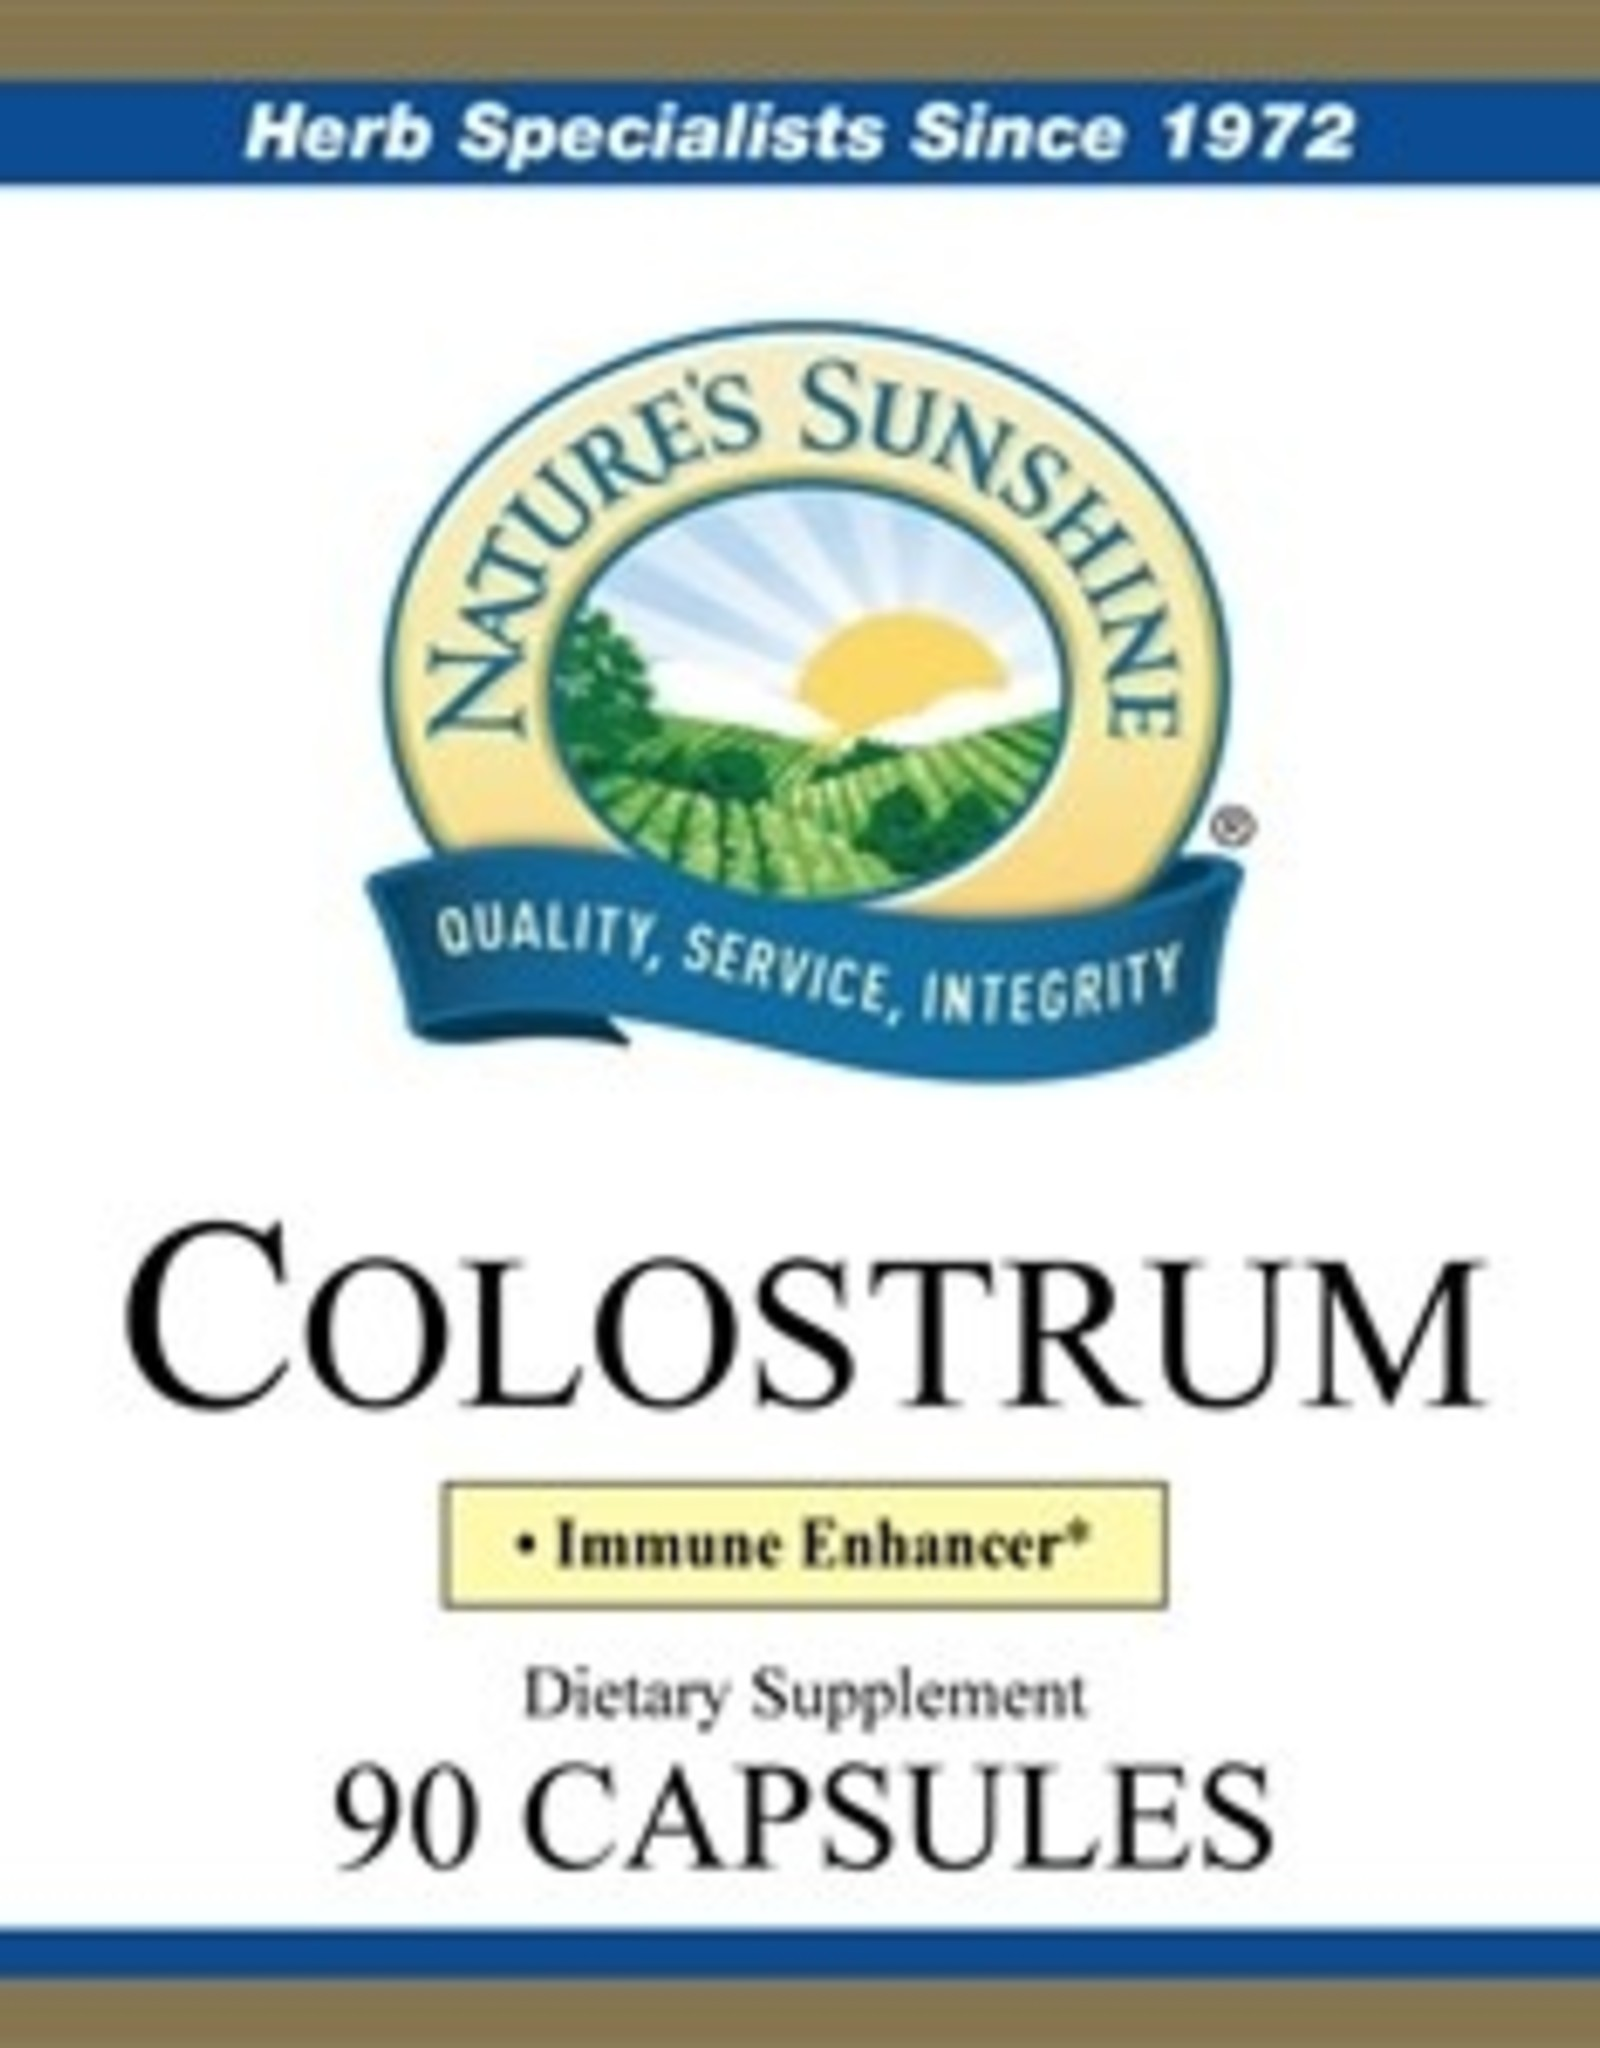 Nature's Sunshine Colostrum (90 caps)